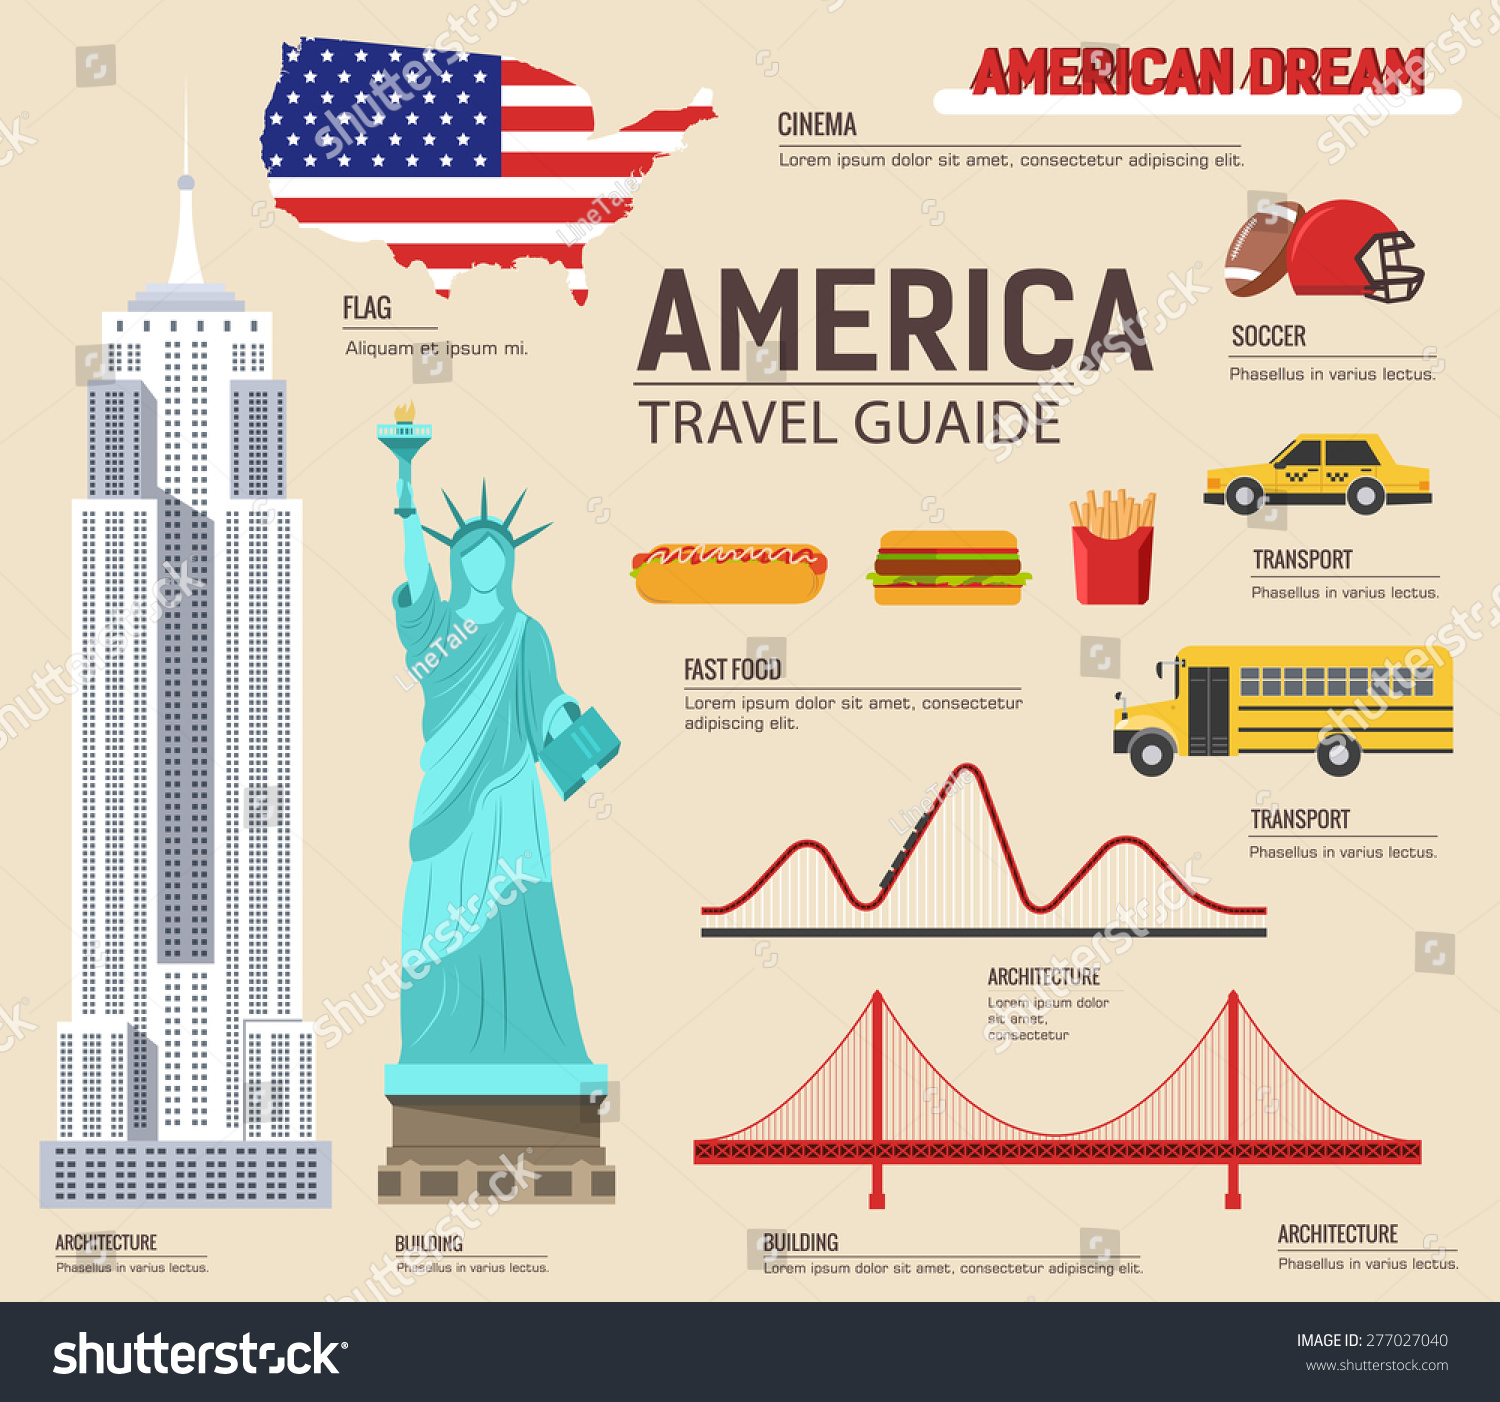 Country Free Goods Usa Vacation 277027040 Vector Stock Travel Guide royalty